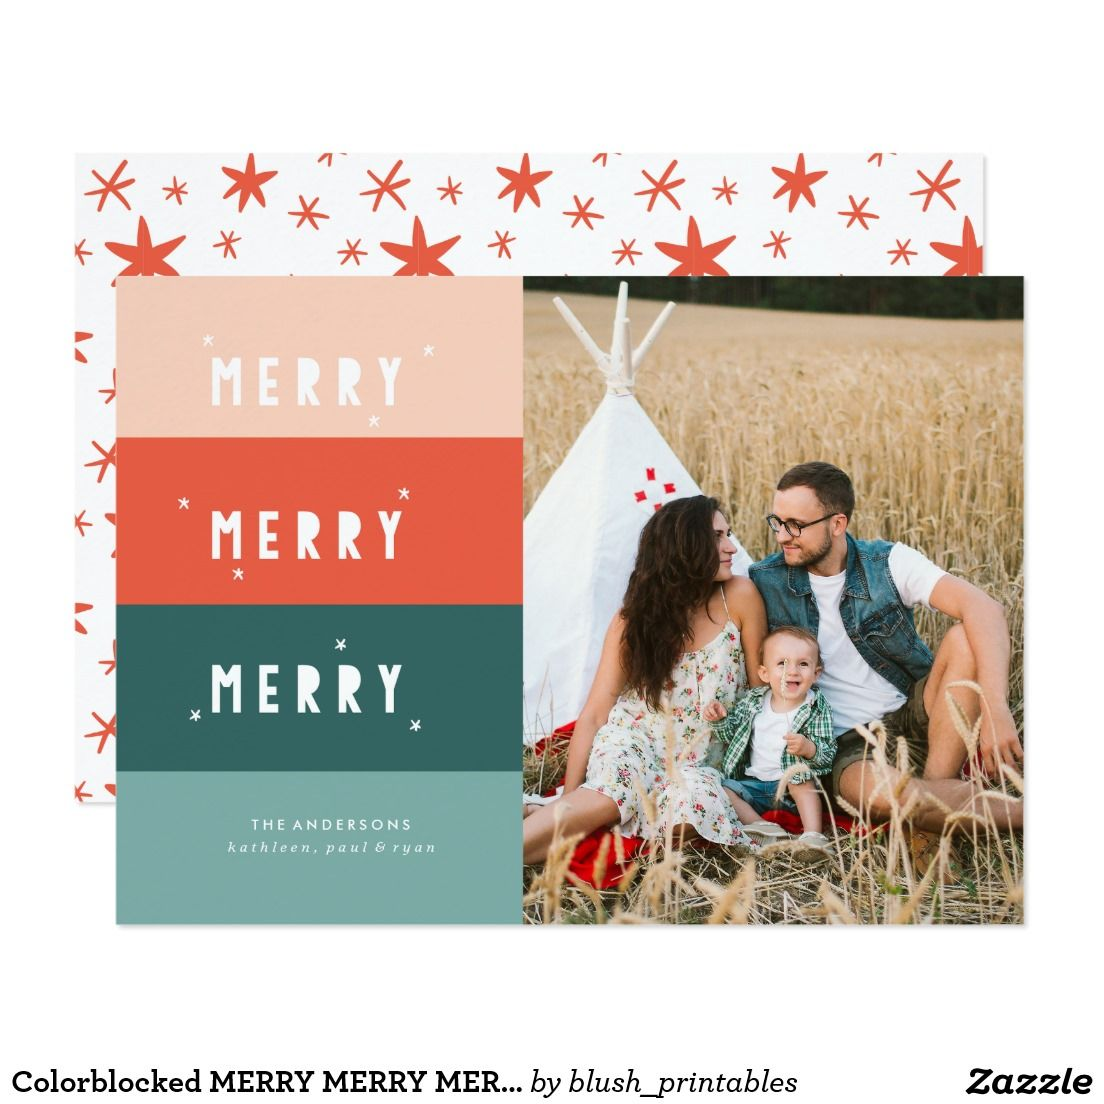 Colorblocked MERRY MERRY MERRY Christmas Card | Christmas Cards ...